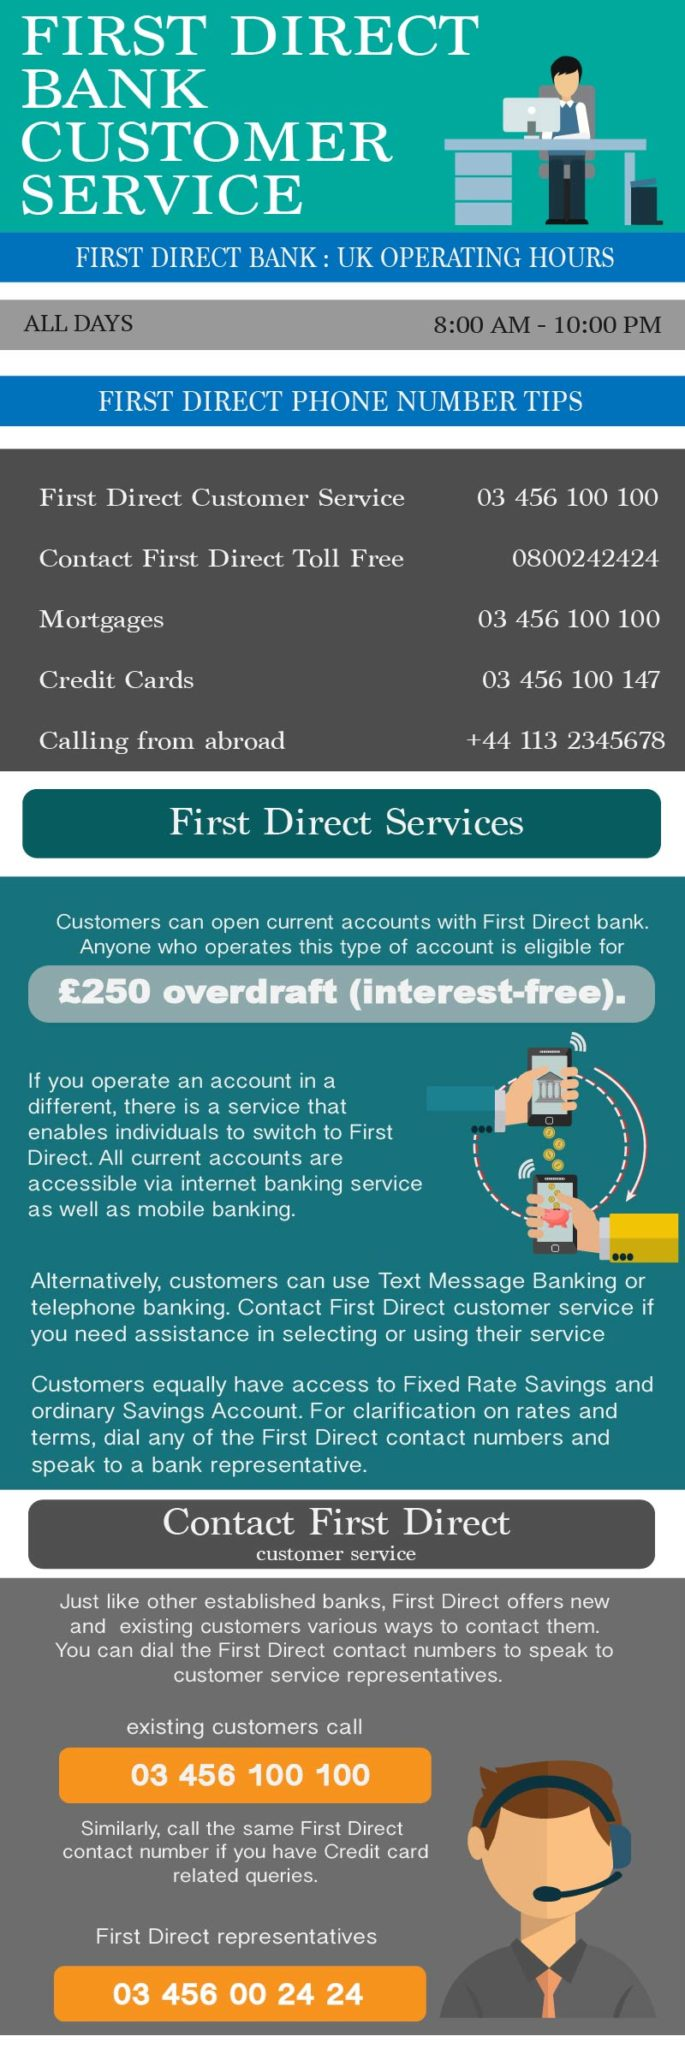 FirstDirect Customer Service Contact Number